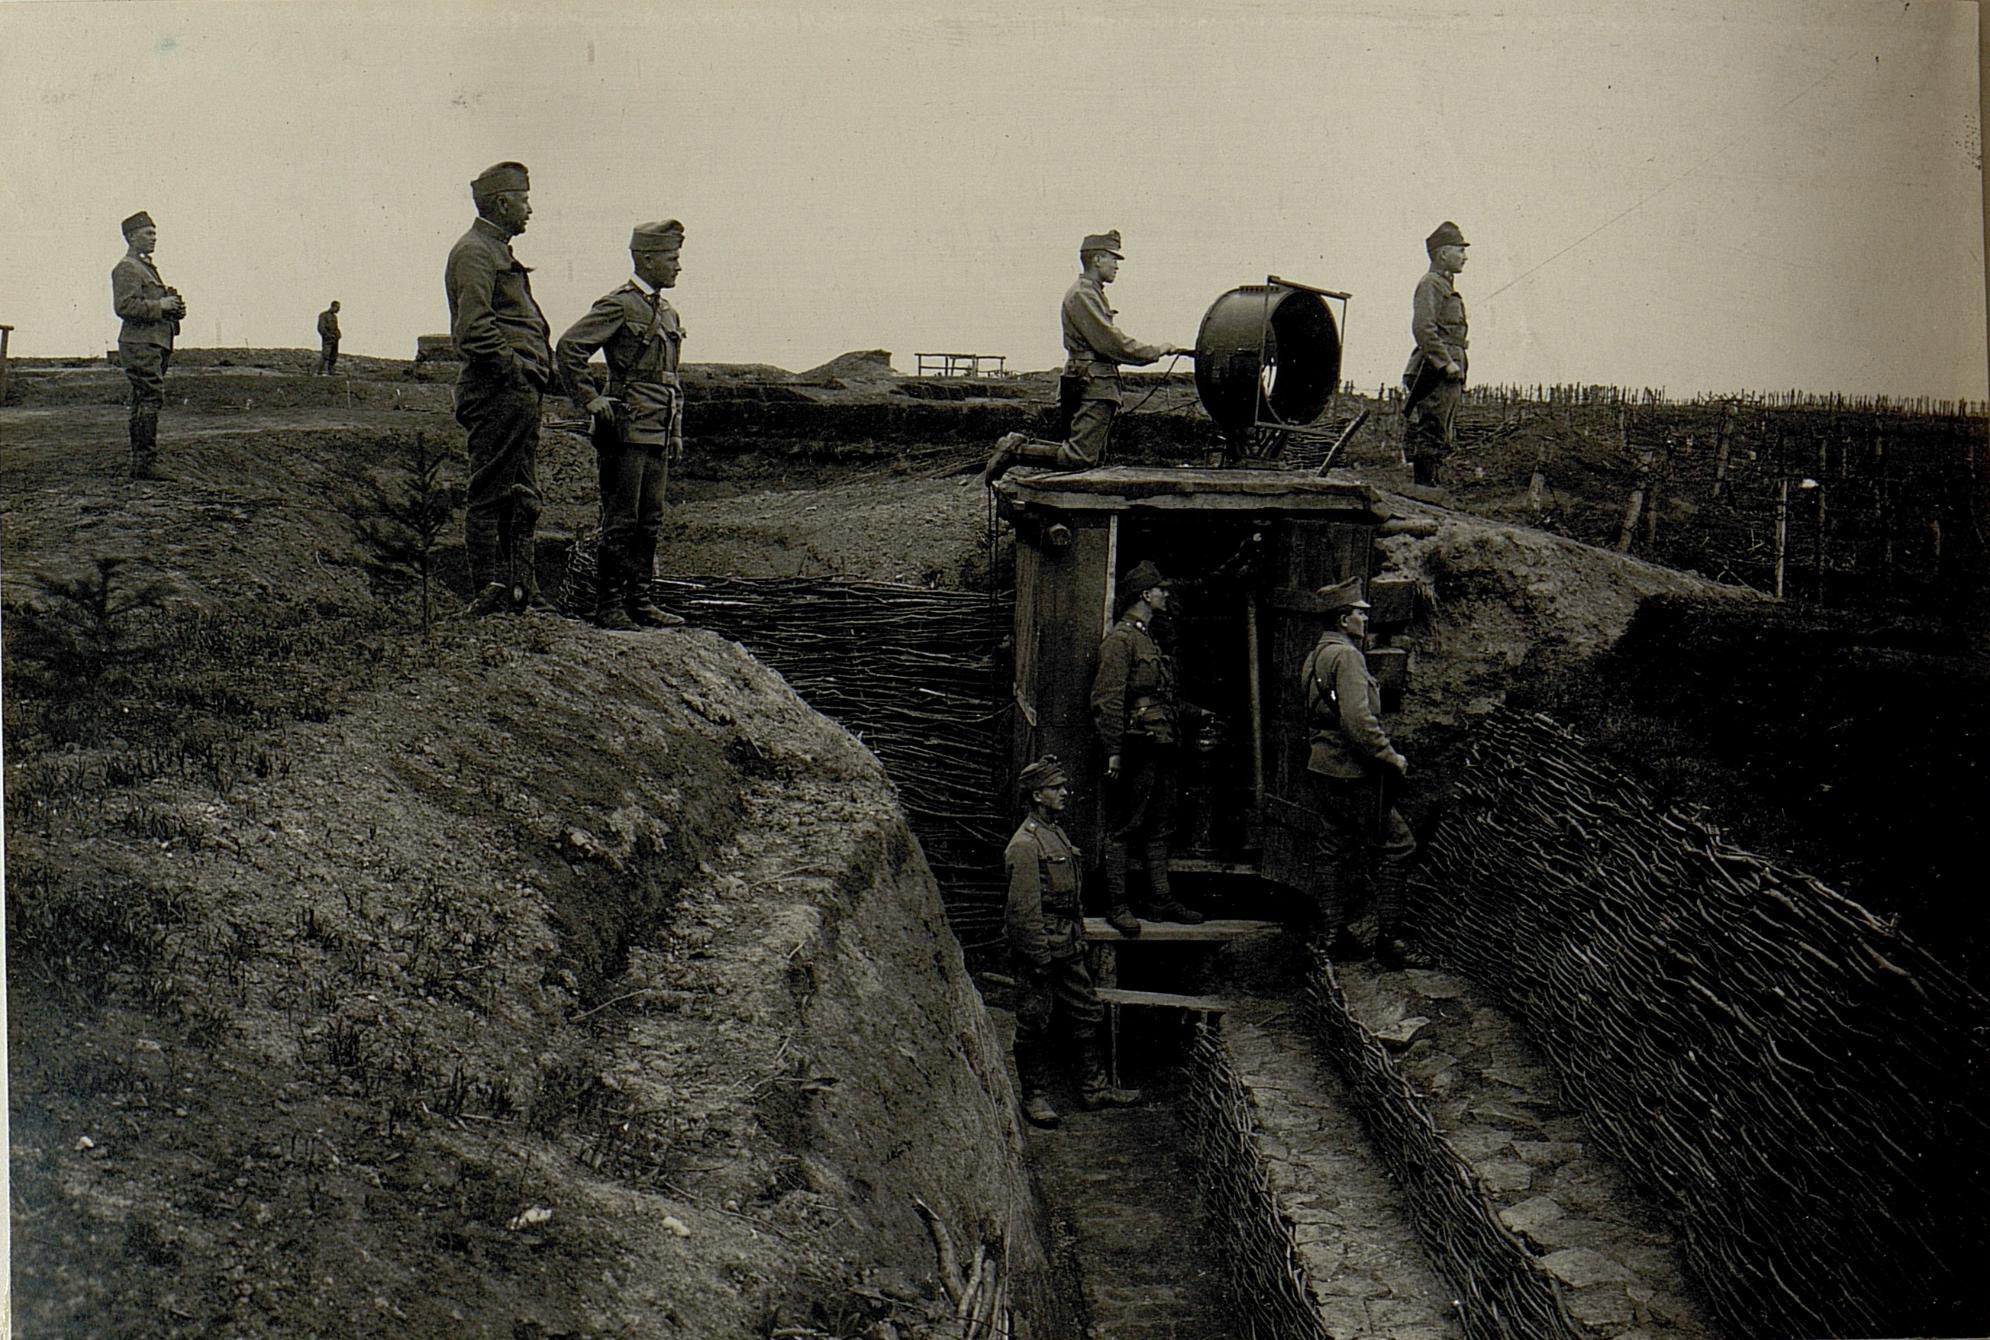 Photograph showing an electrically operated floodlight in a trench in Galicia near the Strypa River, enabling battle to continue into the night.